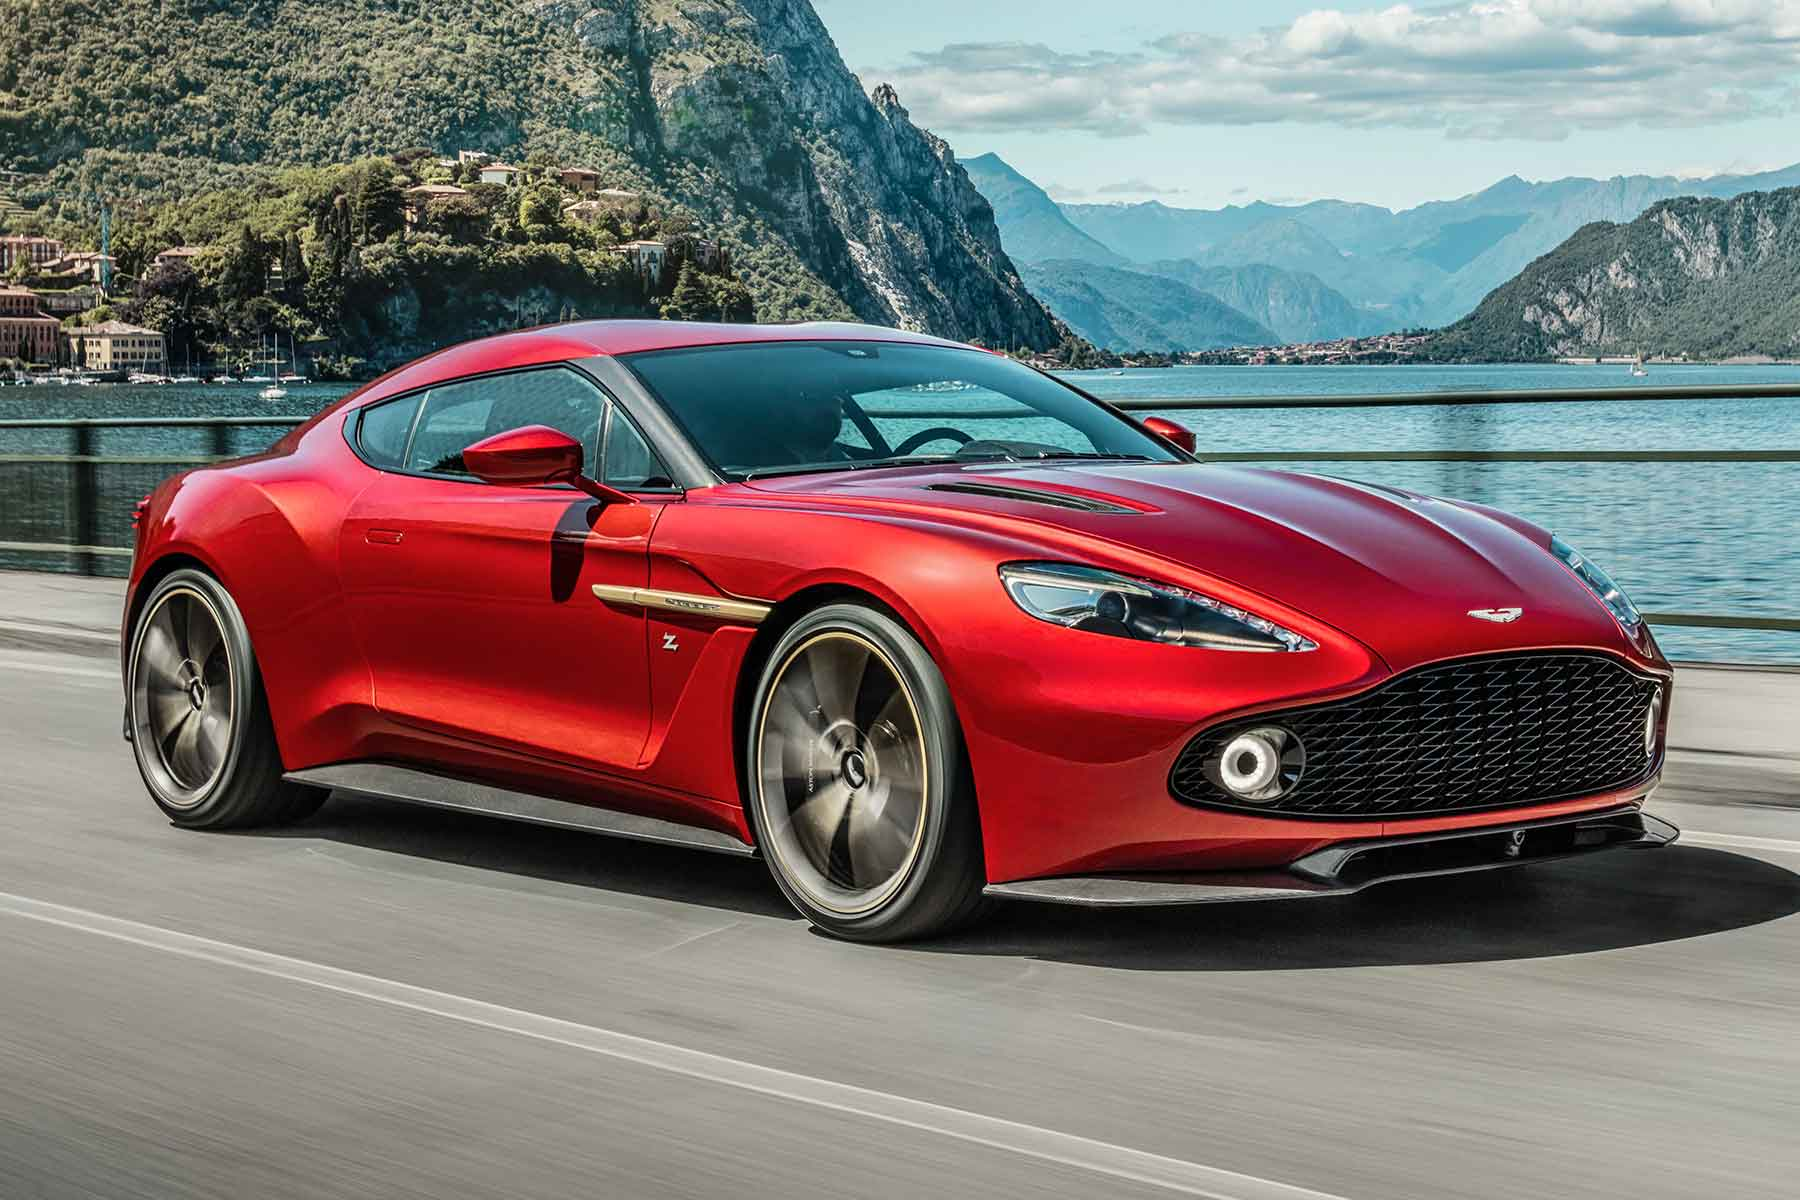 Z Cars The 58 Year History Of Aston Martin And Zagato Motoring Research